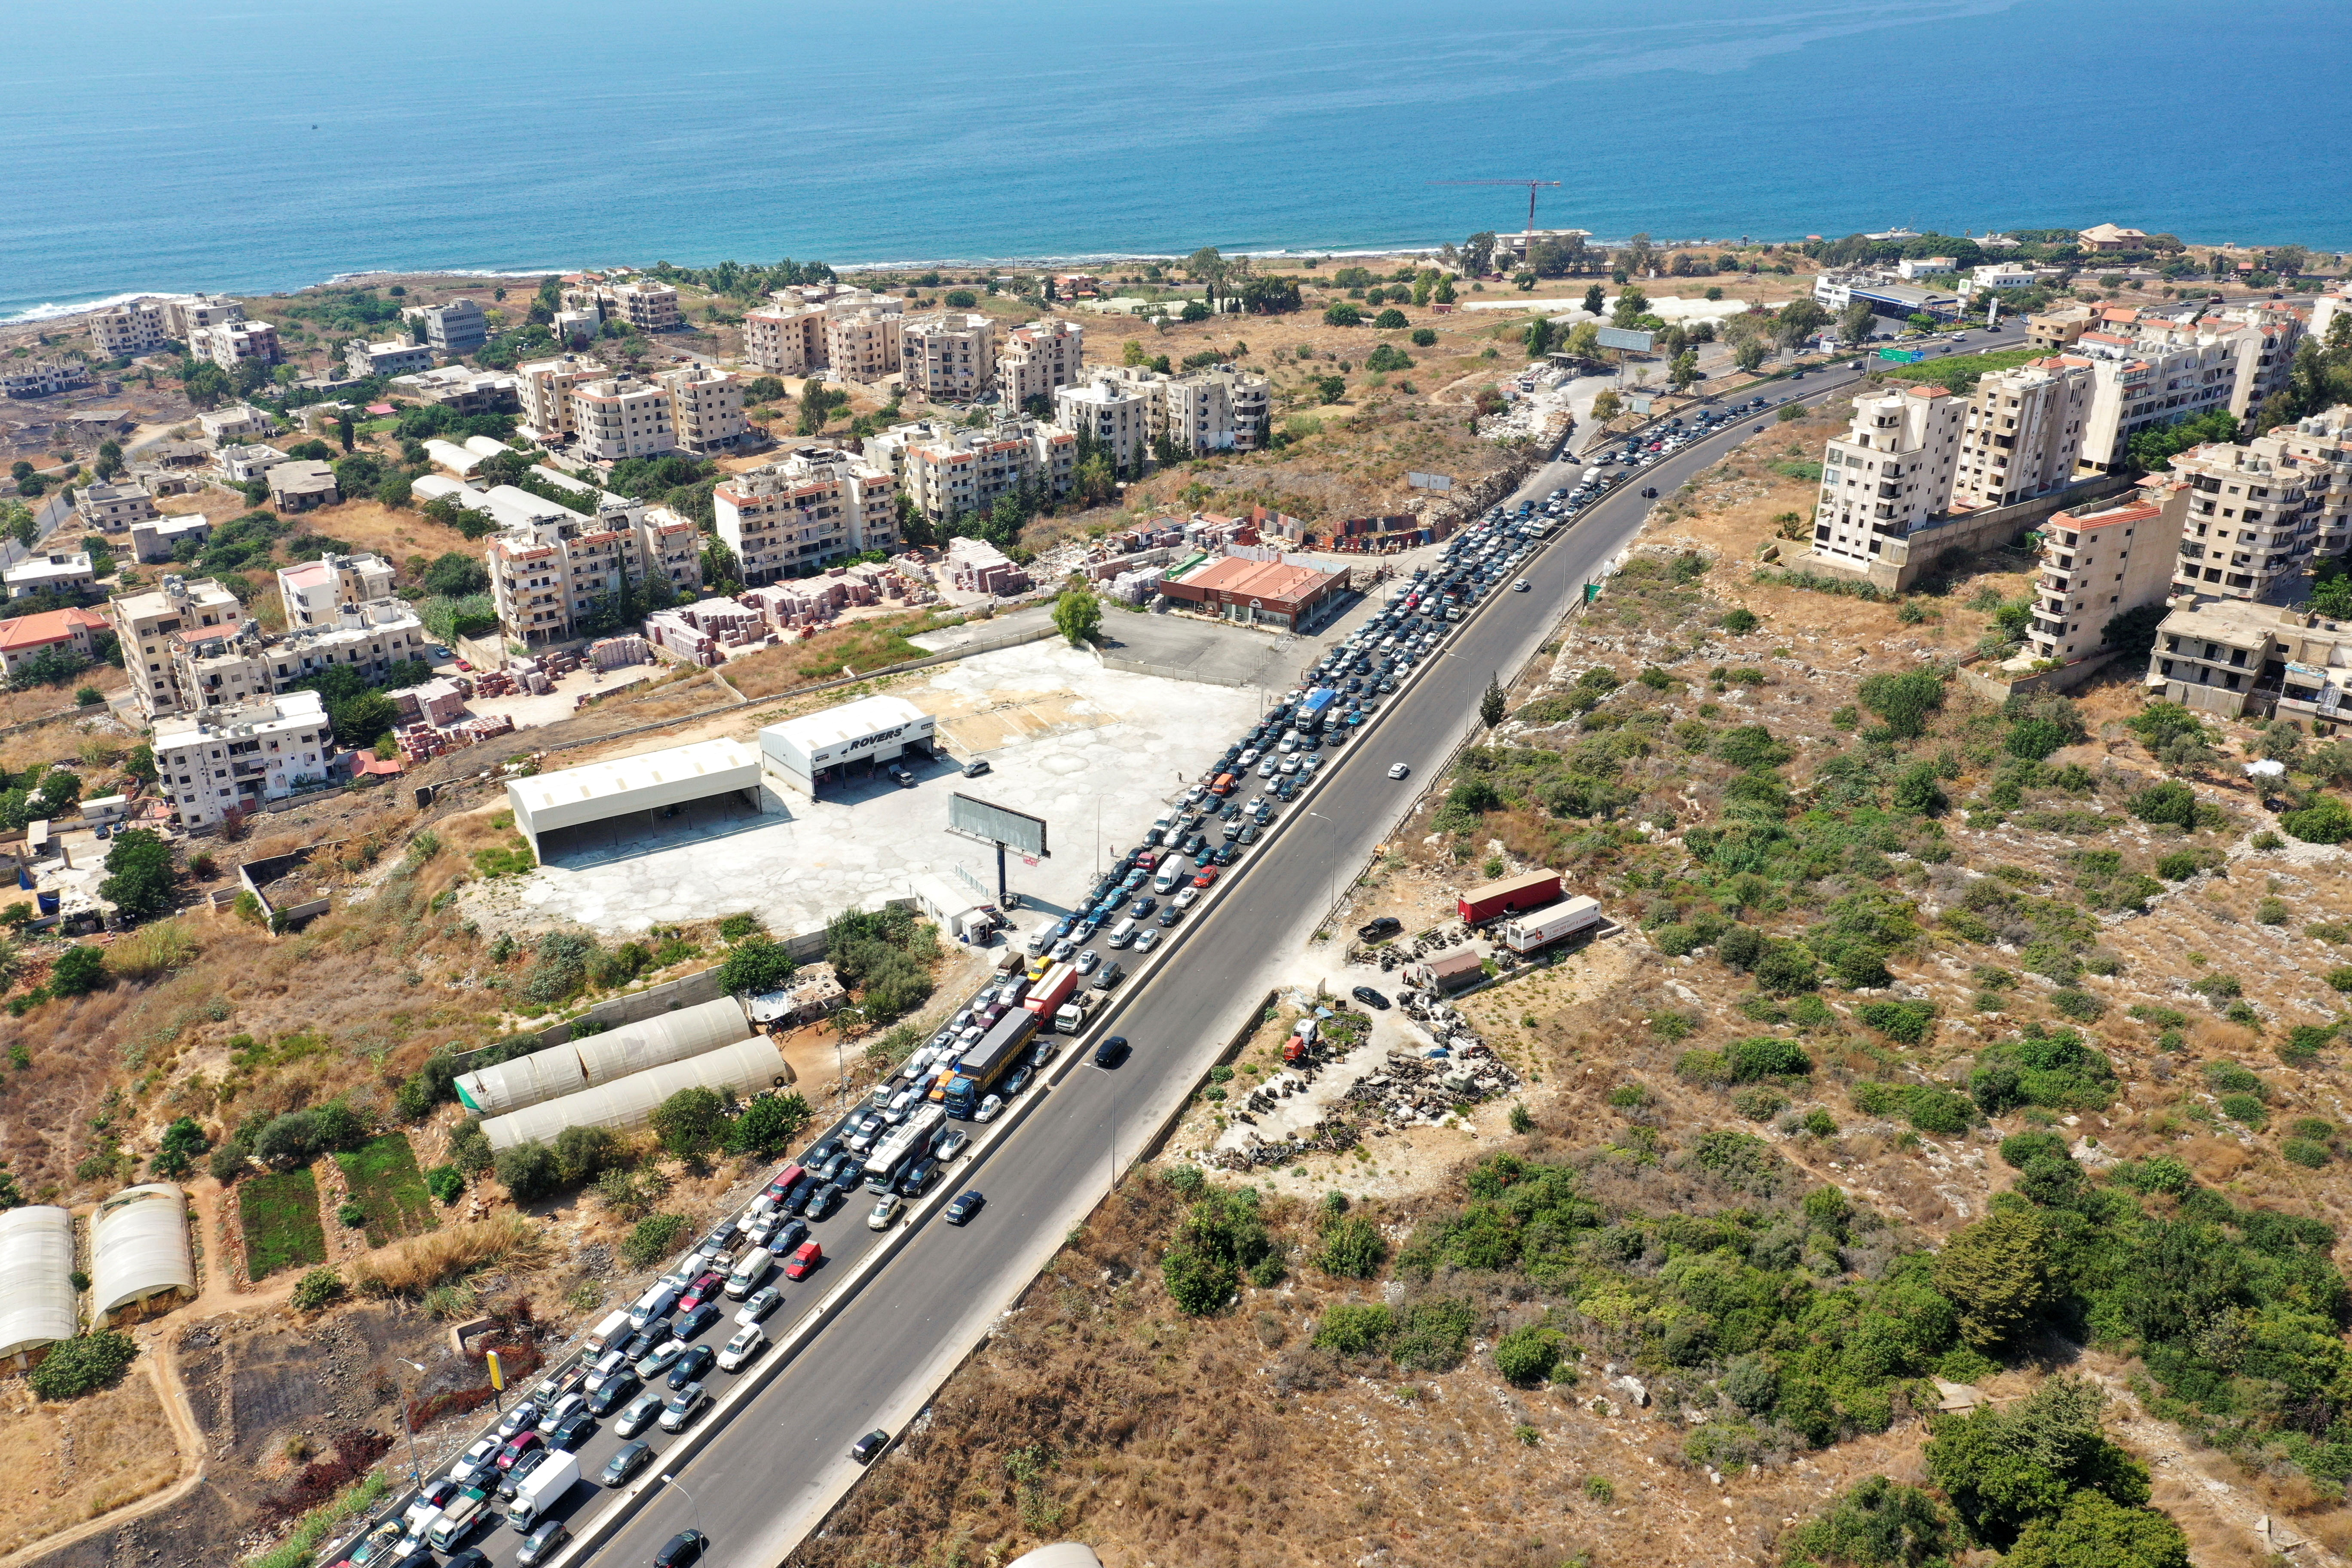 Traffic jam caused by cars lining up for fuel in Damour, Lebanon August 21, 2021. Picture taken August 21, 2021. Picture taken with a drone. REUTERS/Issam Abdallah